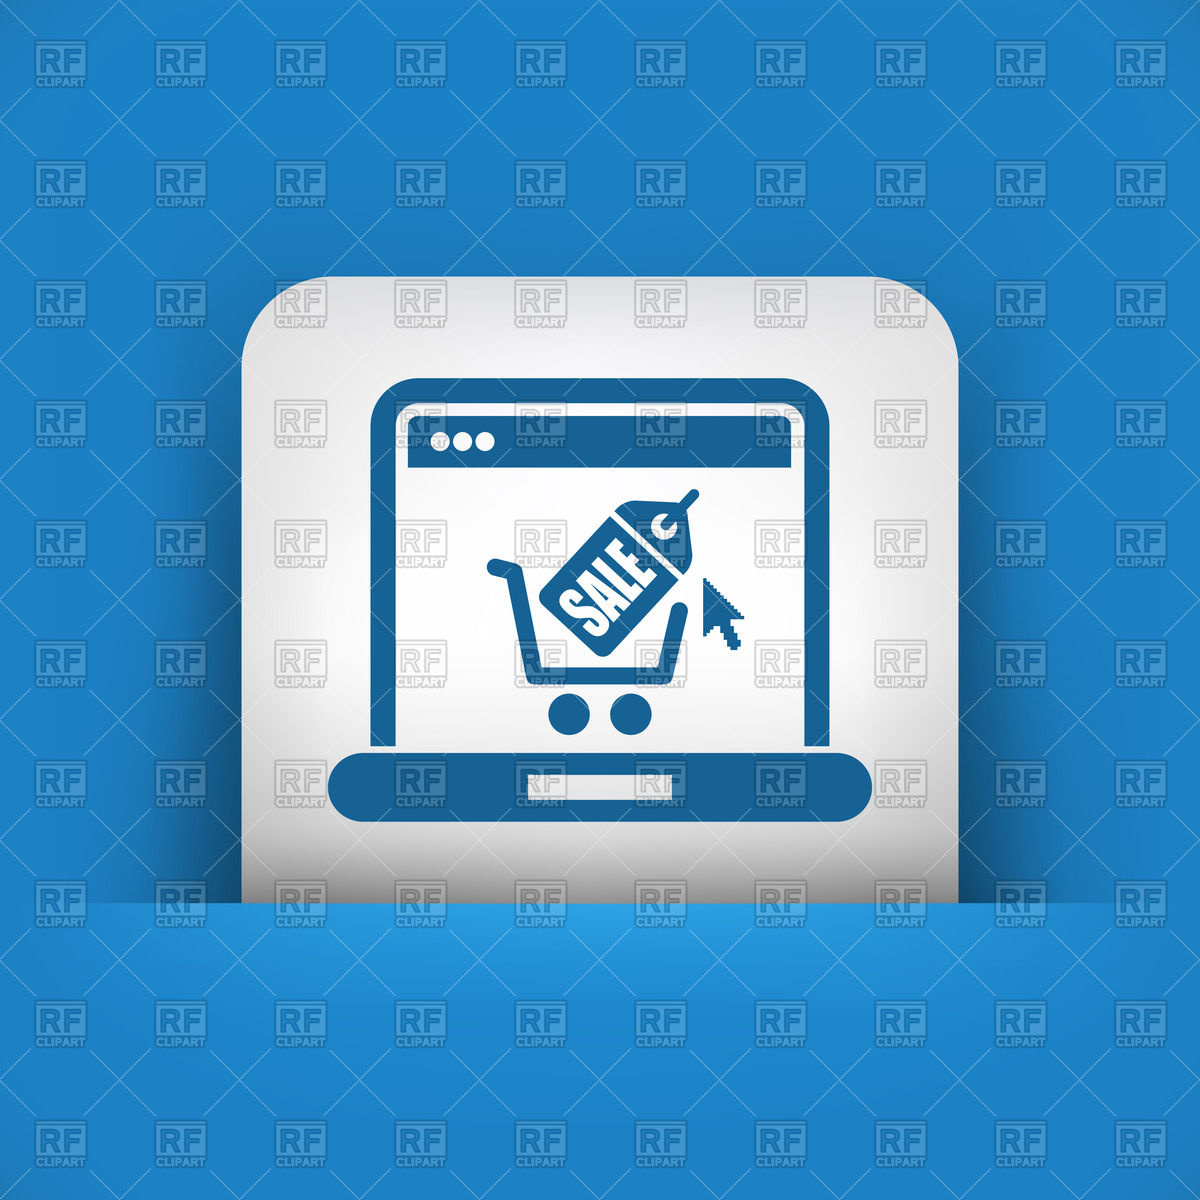 Buy online concept icon with shopping cart on laptop Stock Vector Image.